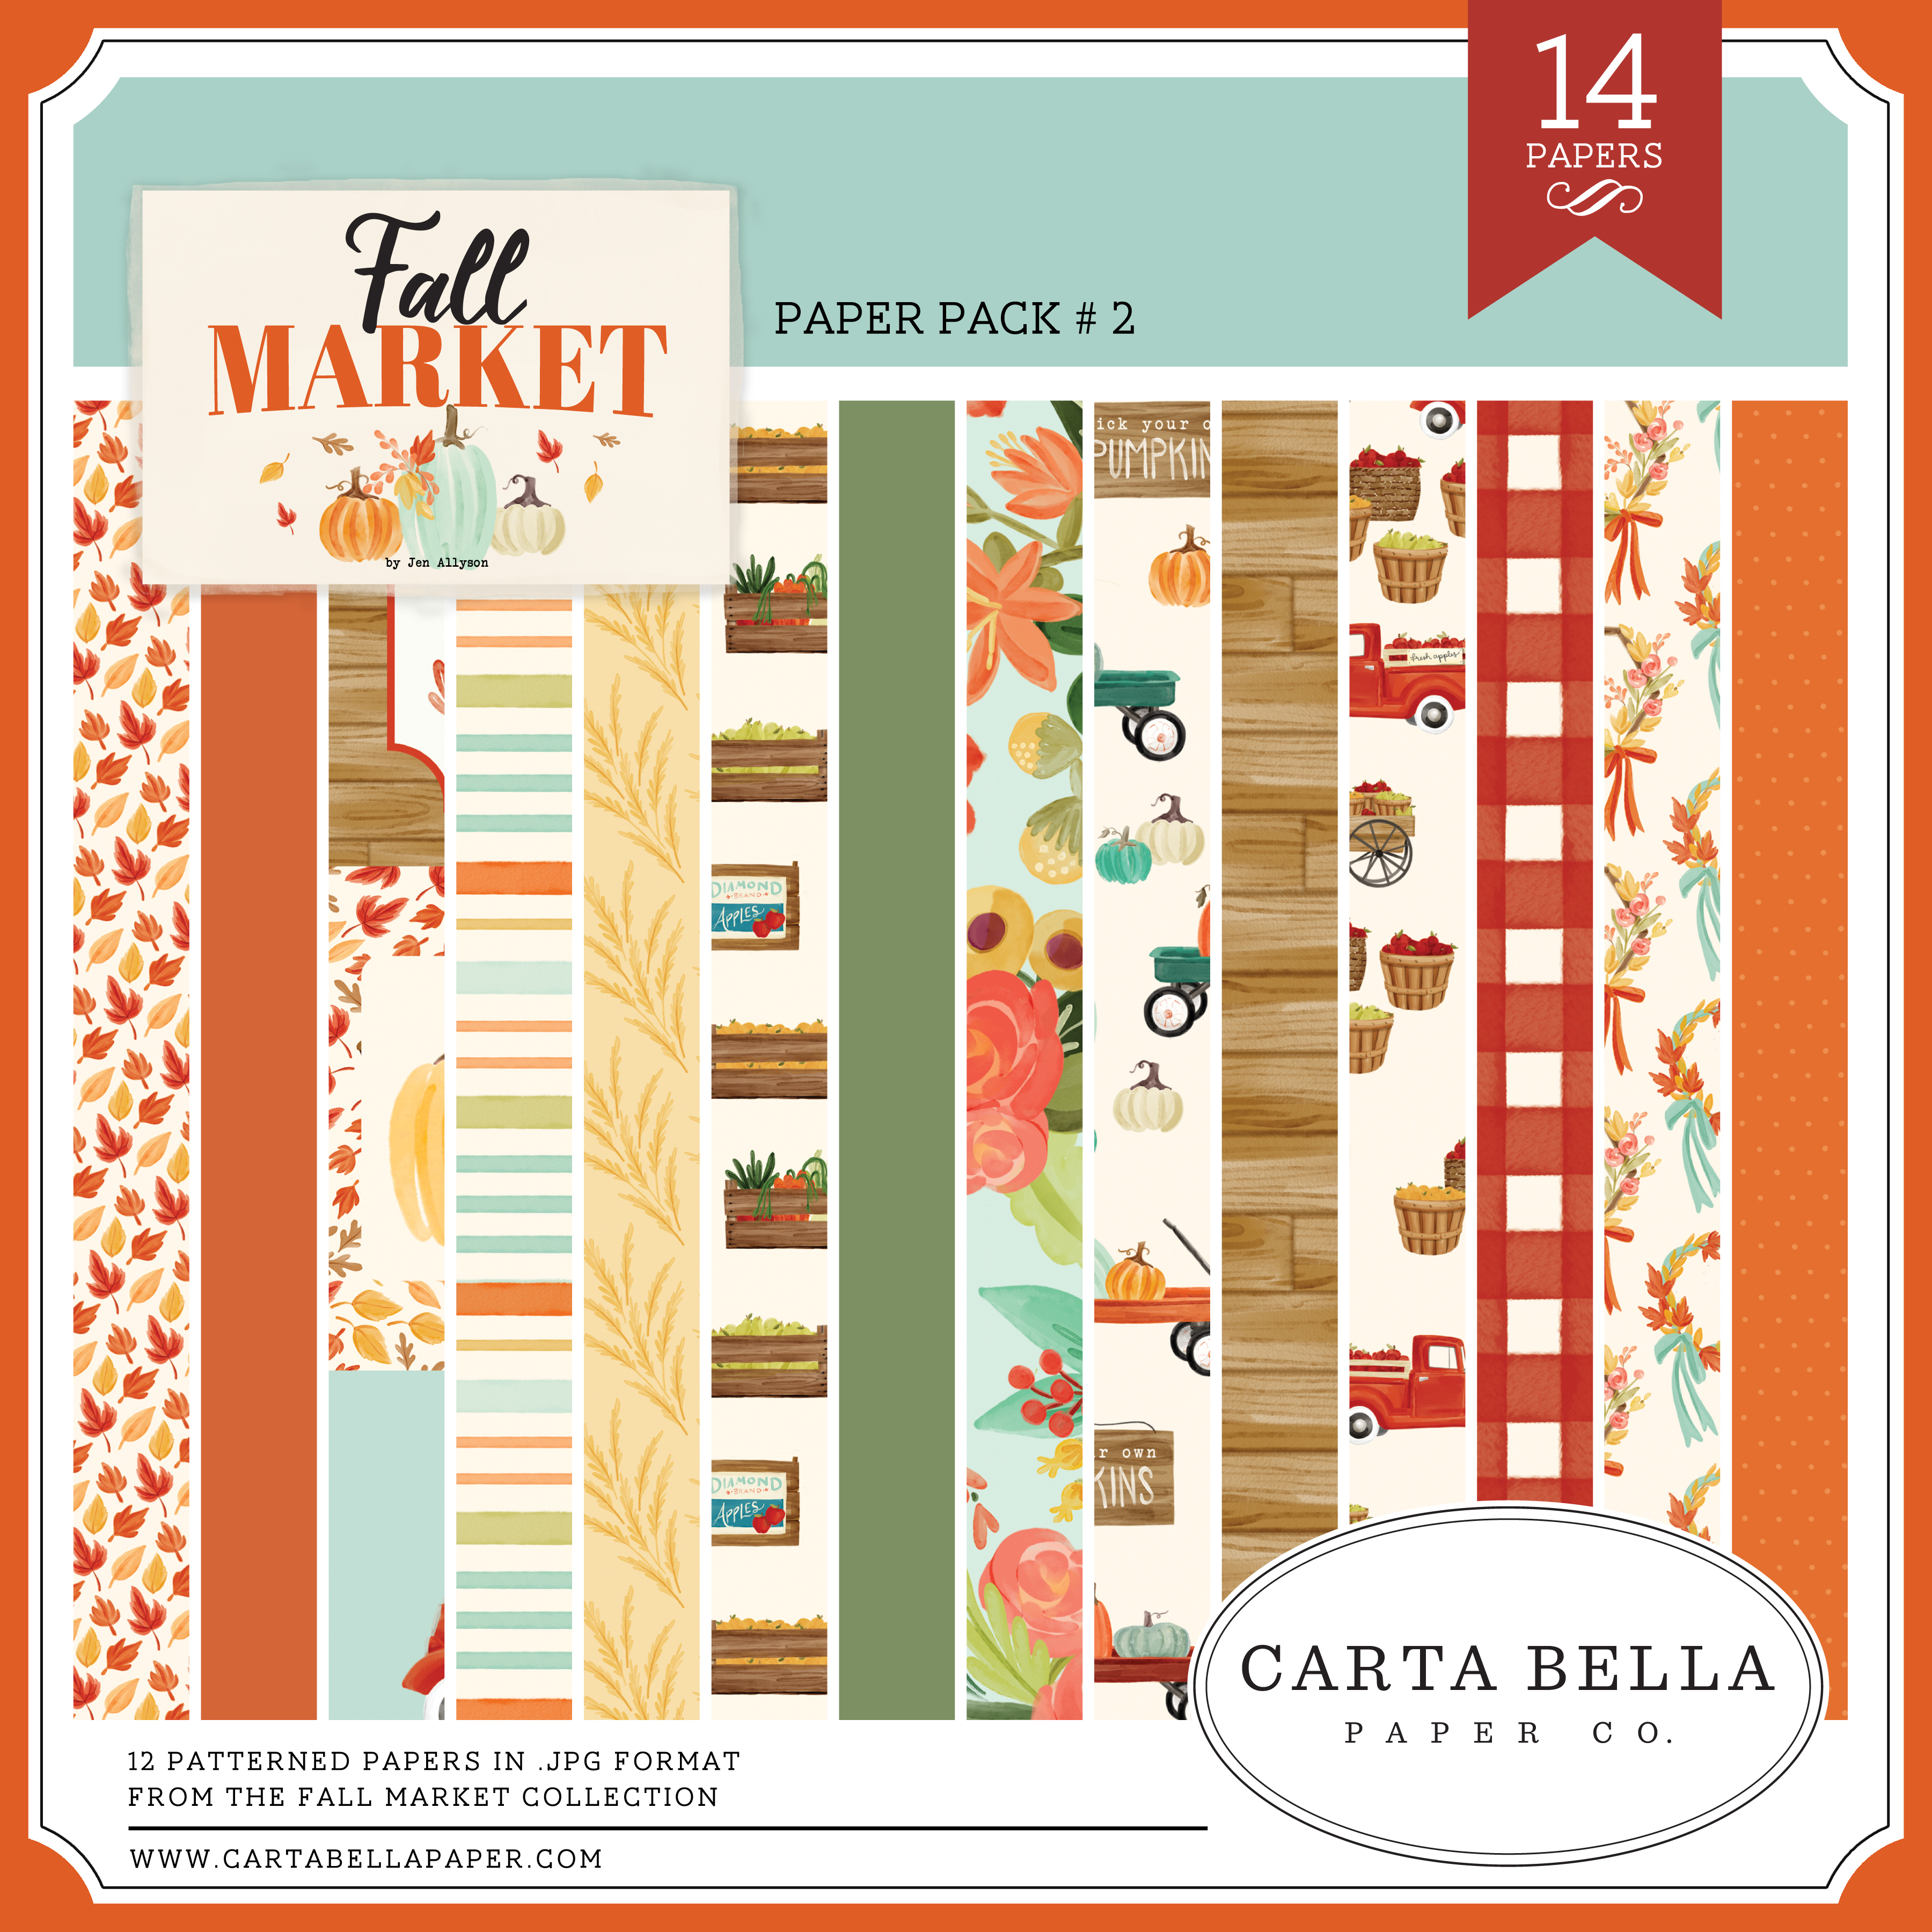 Fall Market Paper Pack #2